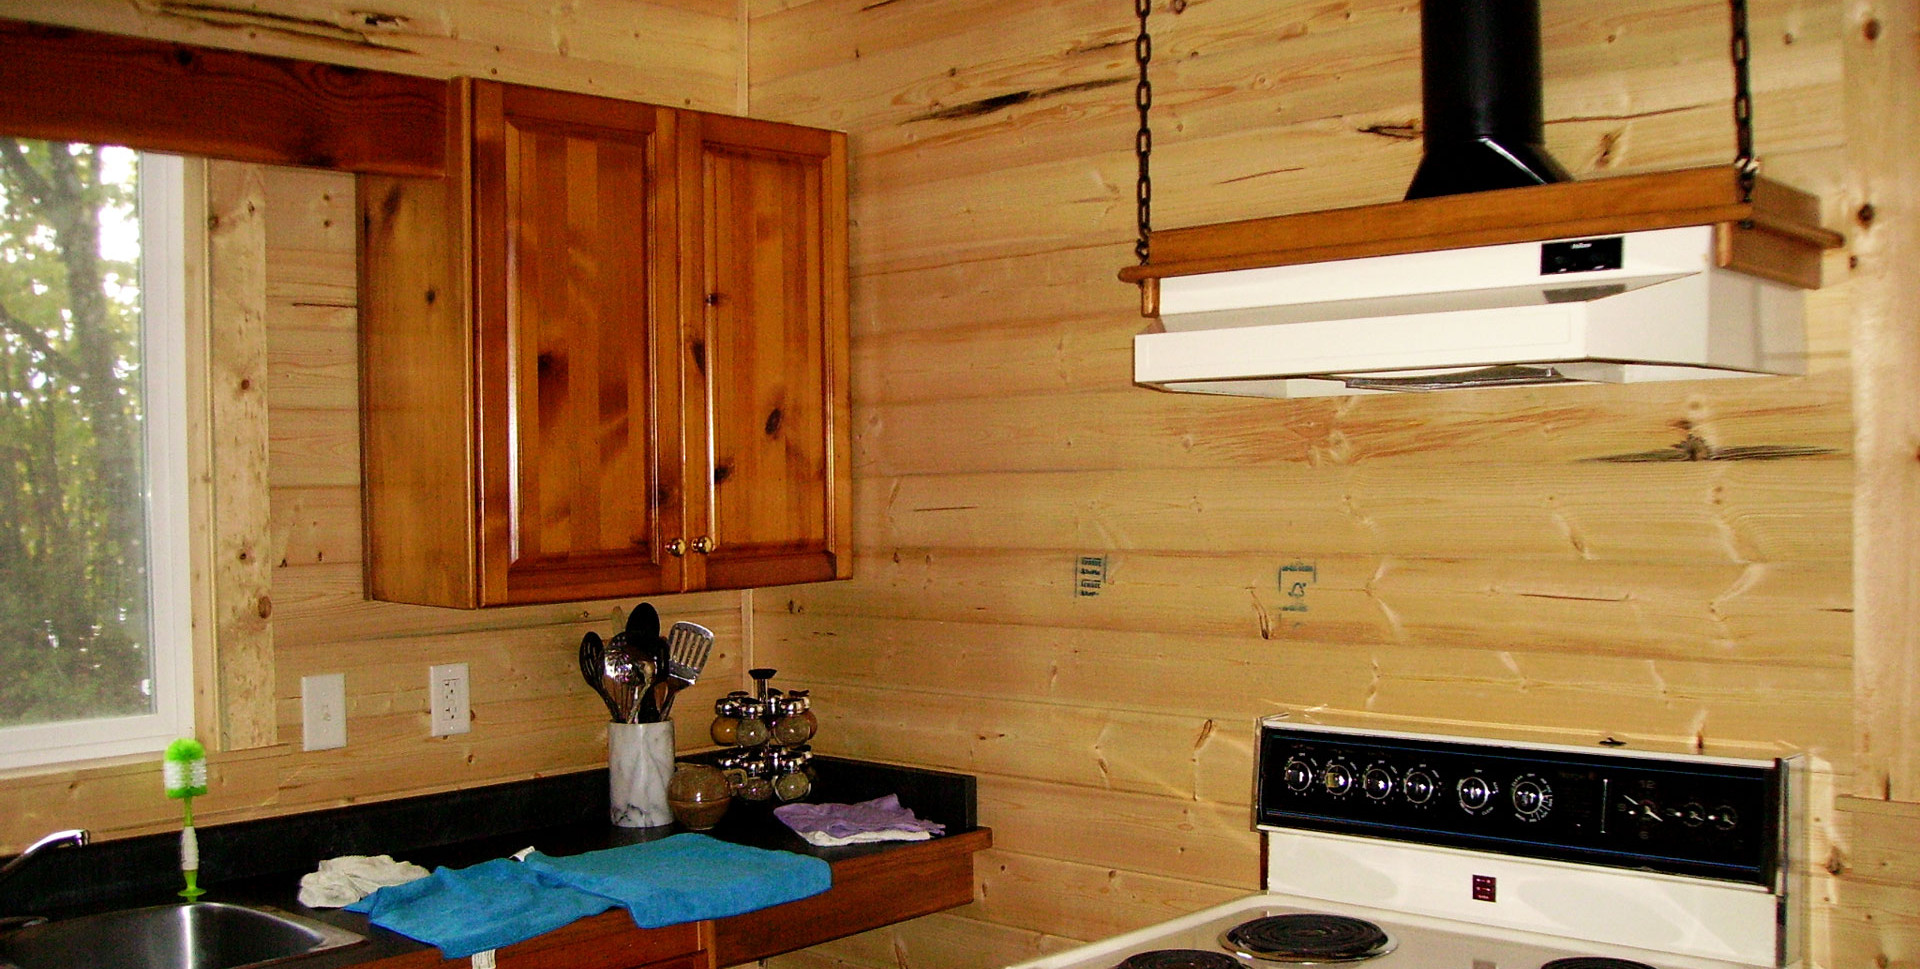 Renovated Cabin - Kitchen